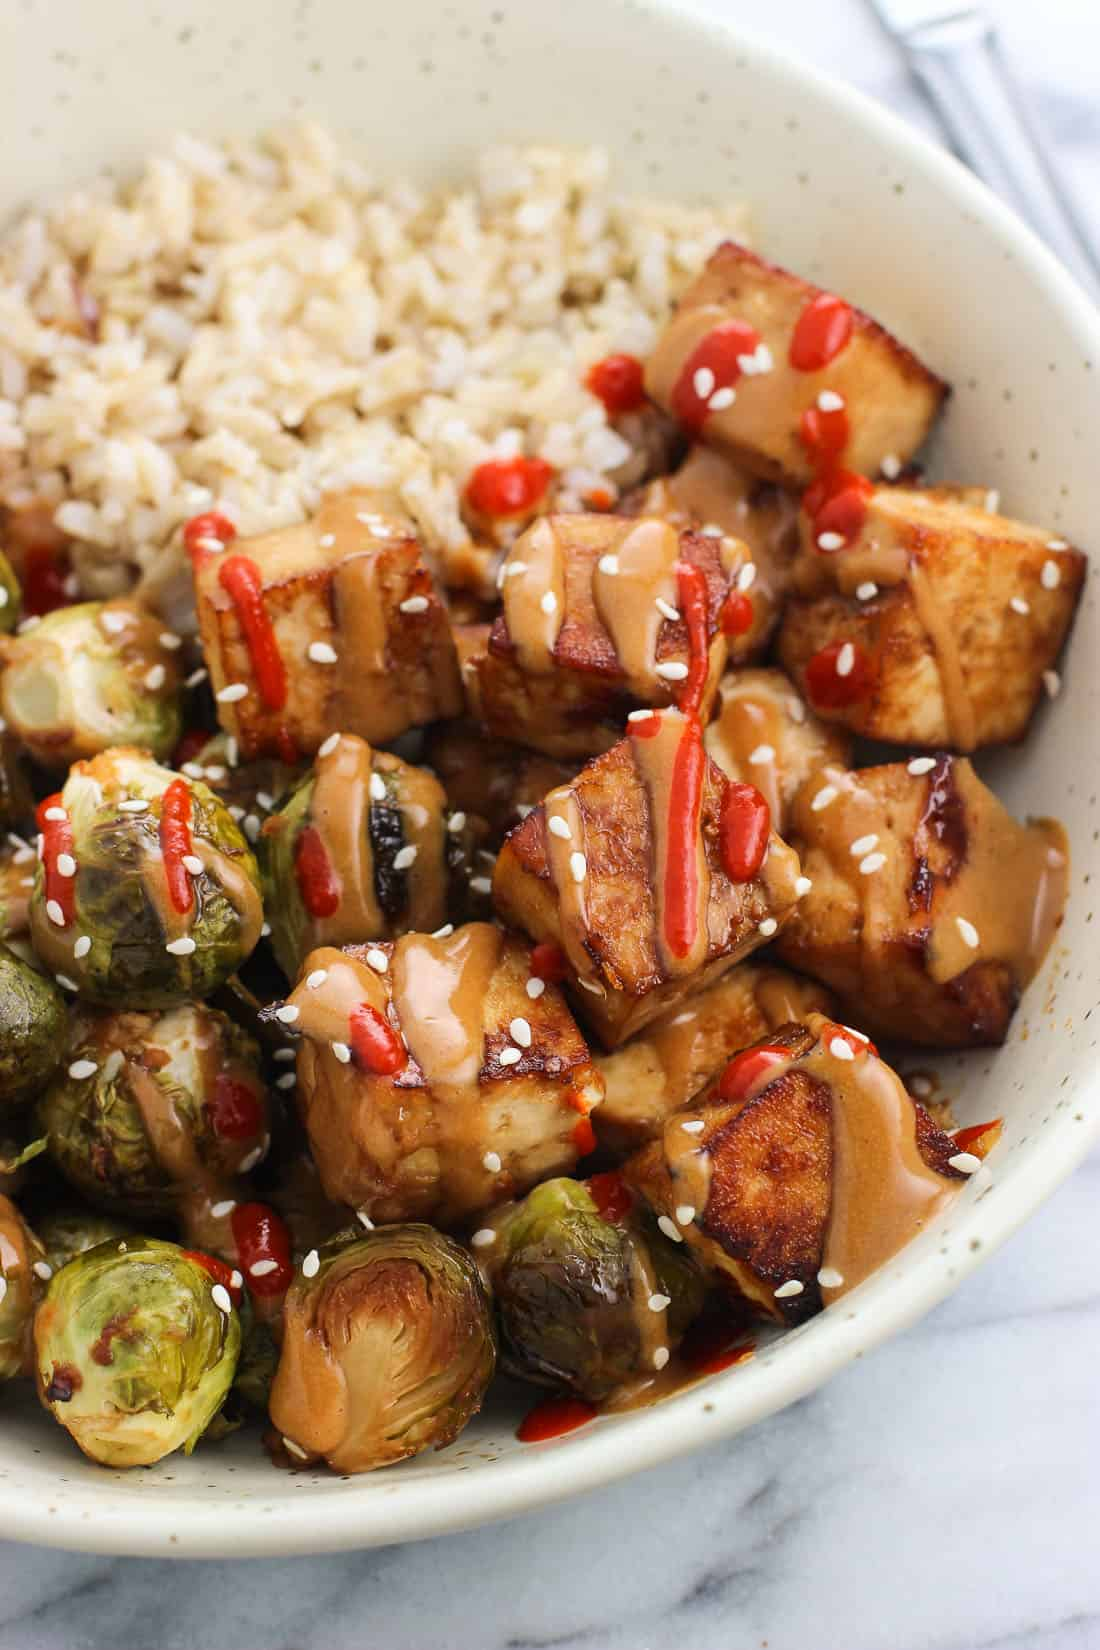 A close-up of roasted tofu cubes and brussels sprouts drizzled with peanut sauce and sriracha, served next to brown rice